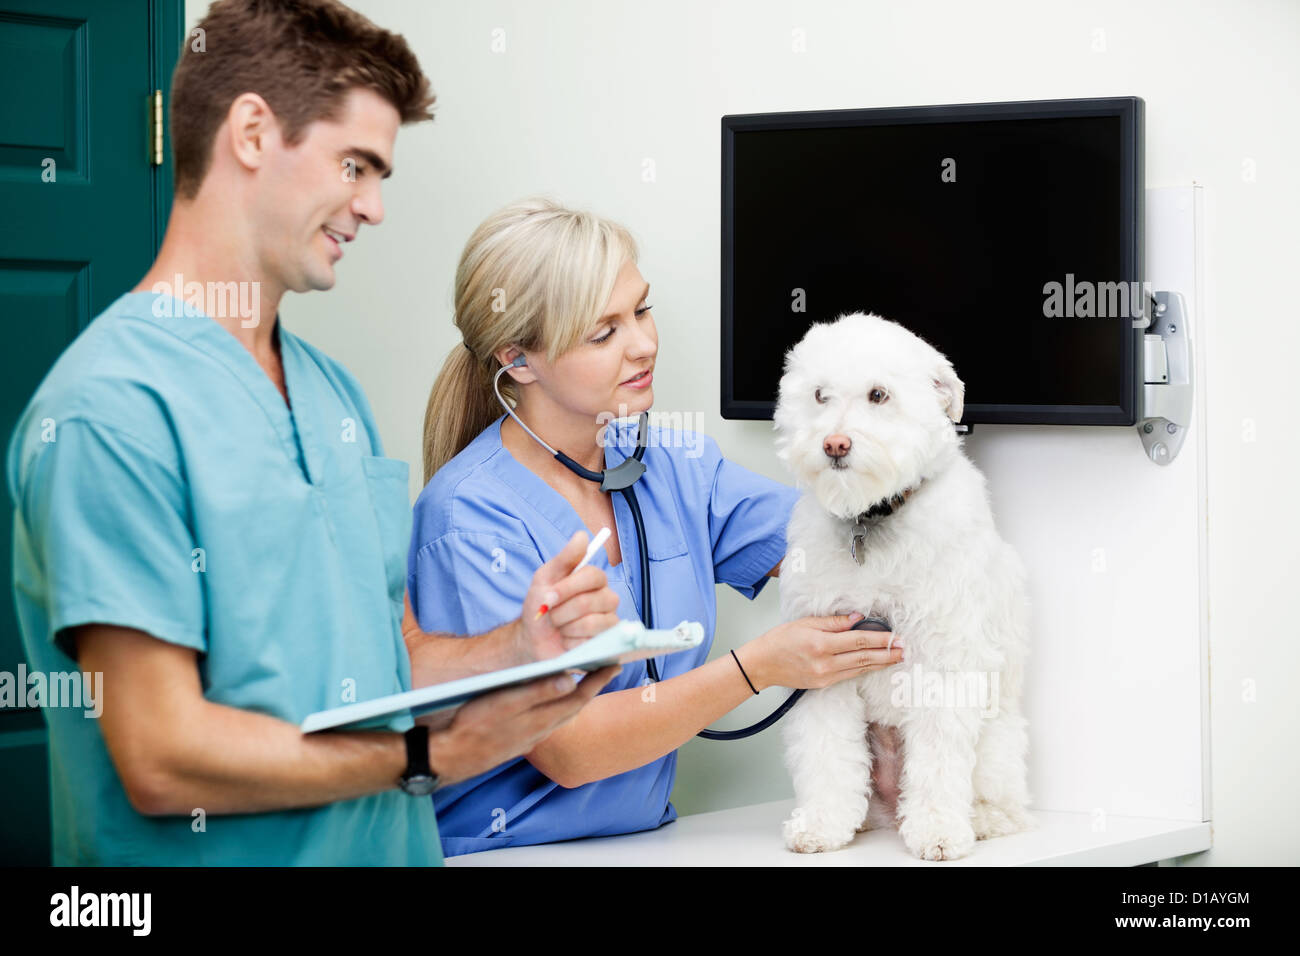 Veterinarian Doctors Examining A Dog At Clinic - Stock Image